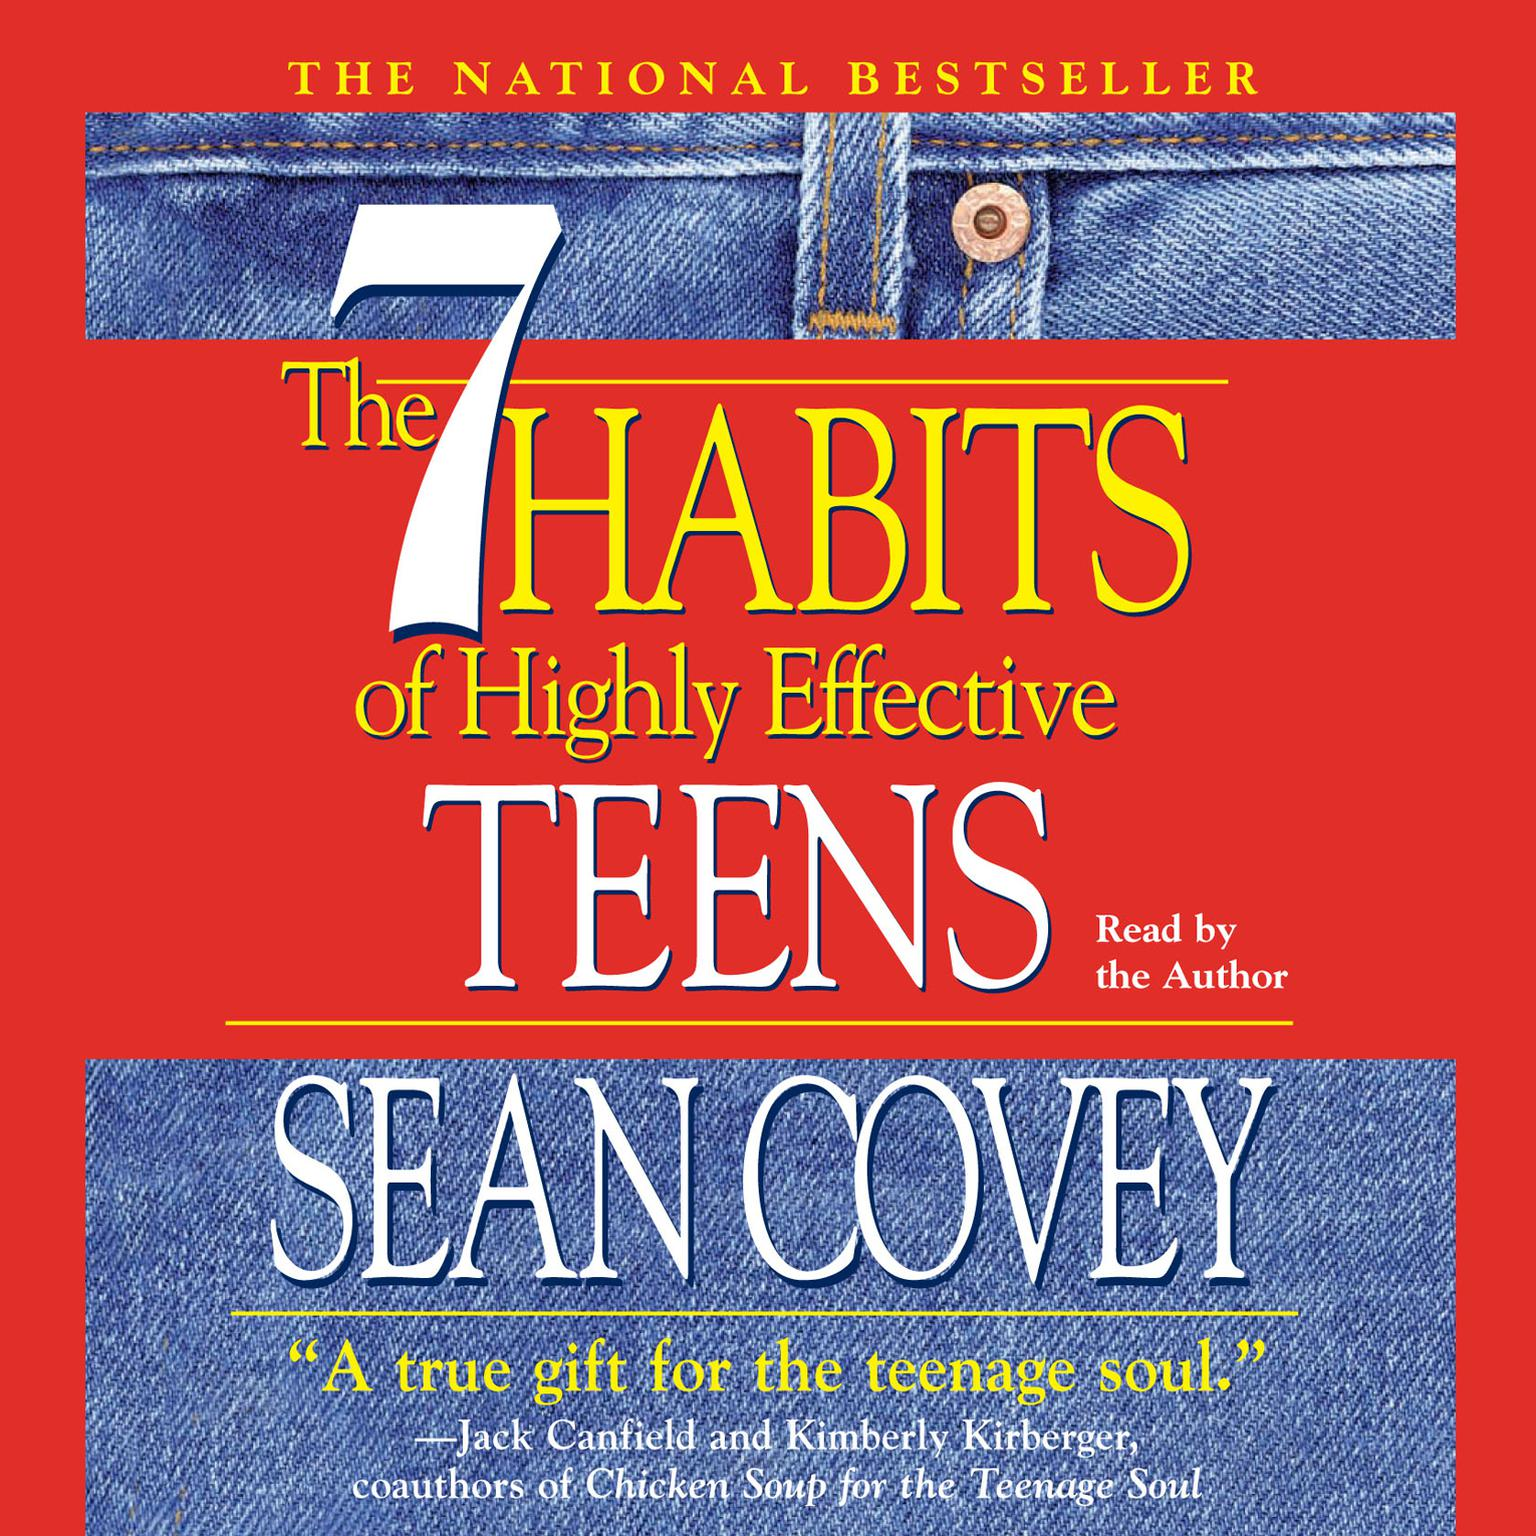 Printable The 7 Habits of Highly Effective Teens Audiobook Cover Art